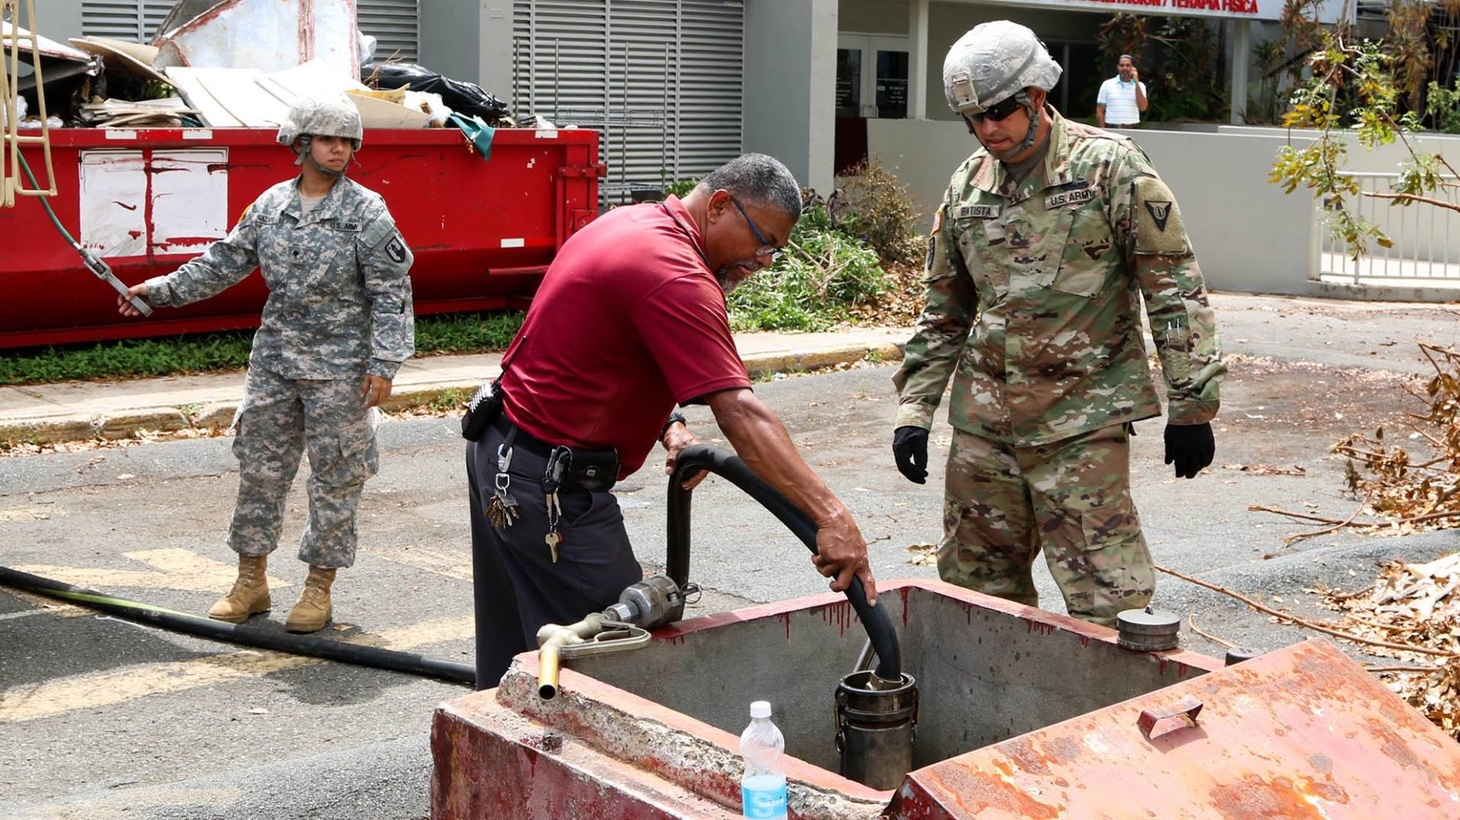 Almost three months after Hurricane Maria made landfall in Puerto Rico, the U.S. territory is still struggling to get basic necessities like water and power. The islands were already dealing with a crushing amount of debt before the storms, how should the U.S. help its territory recover?